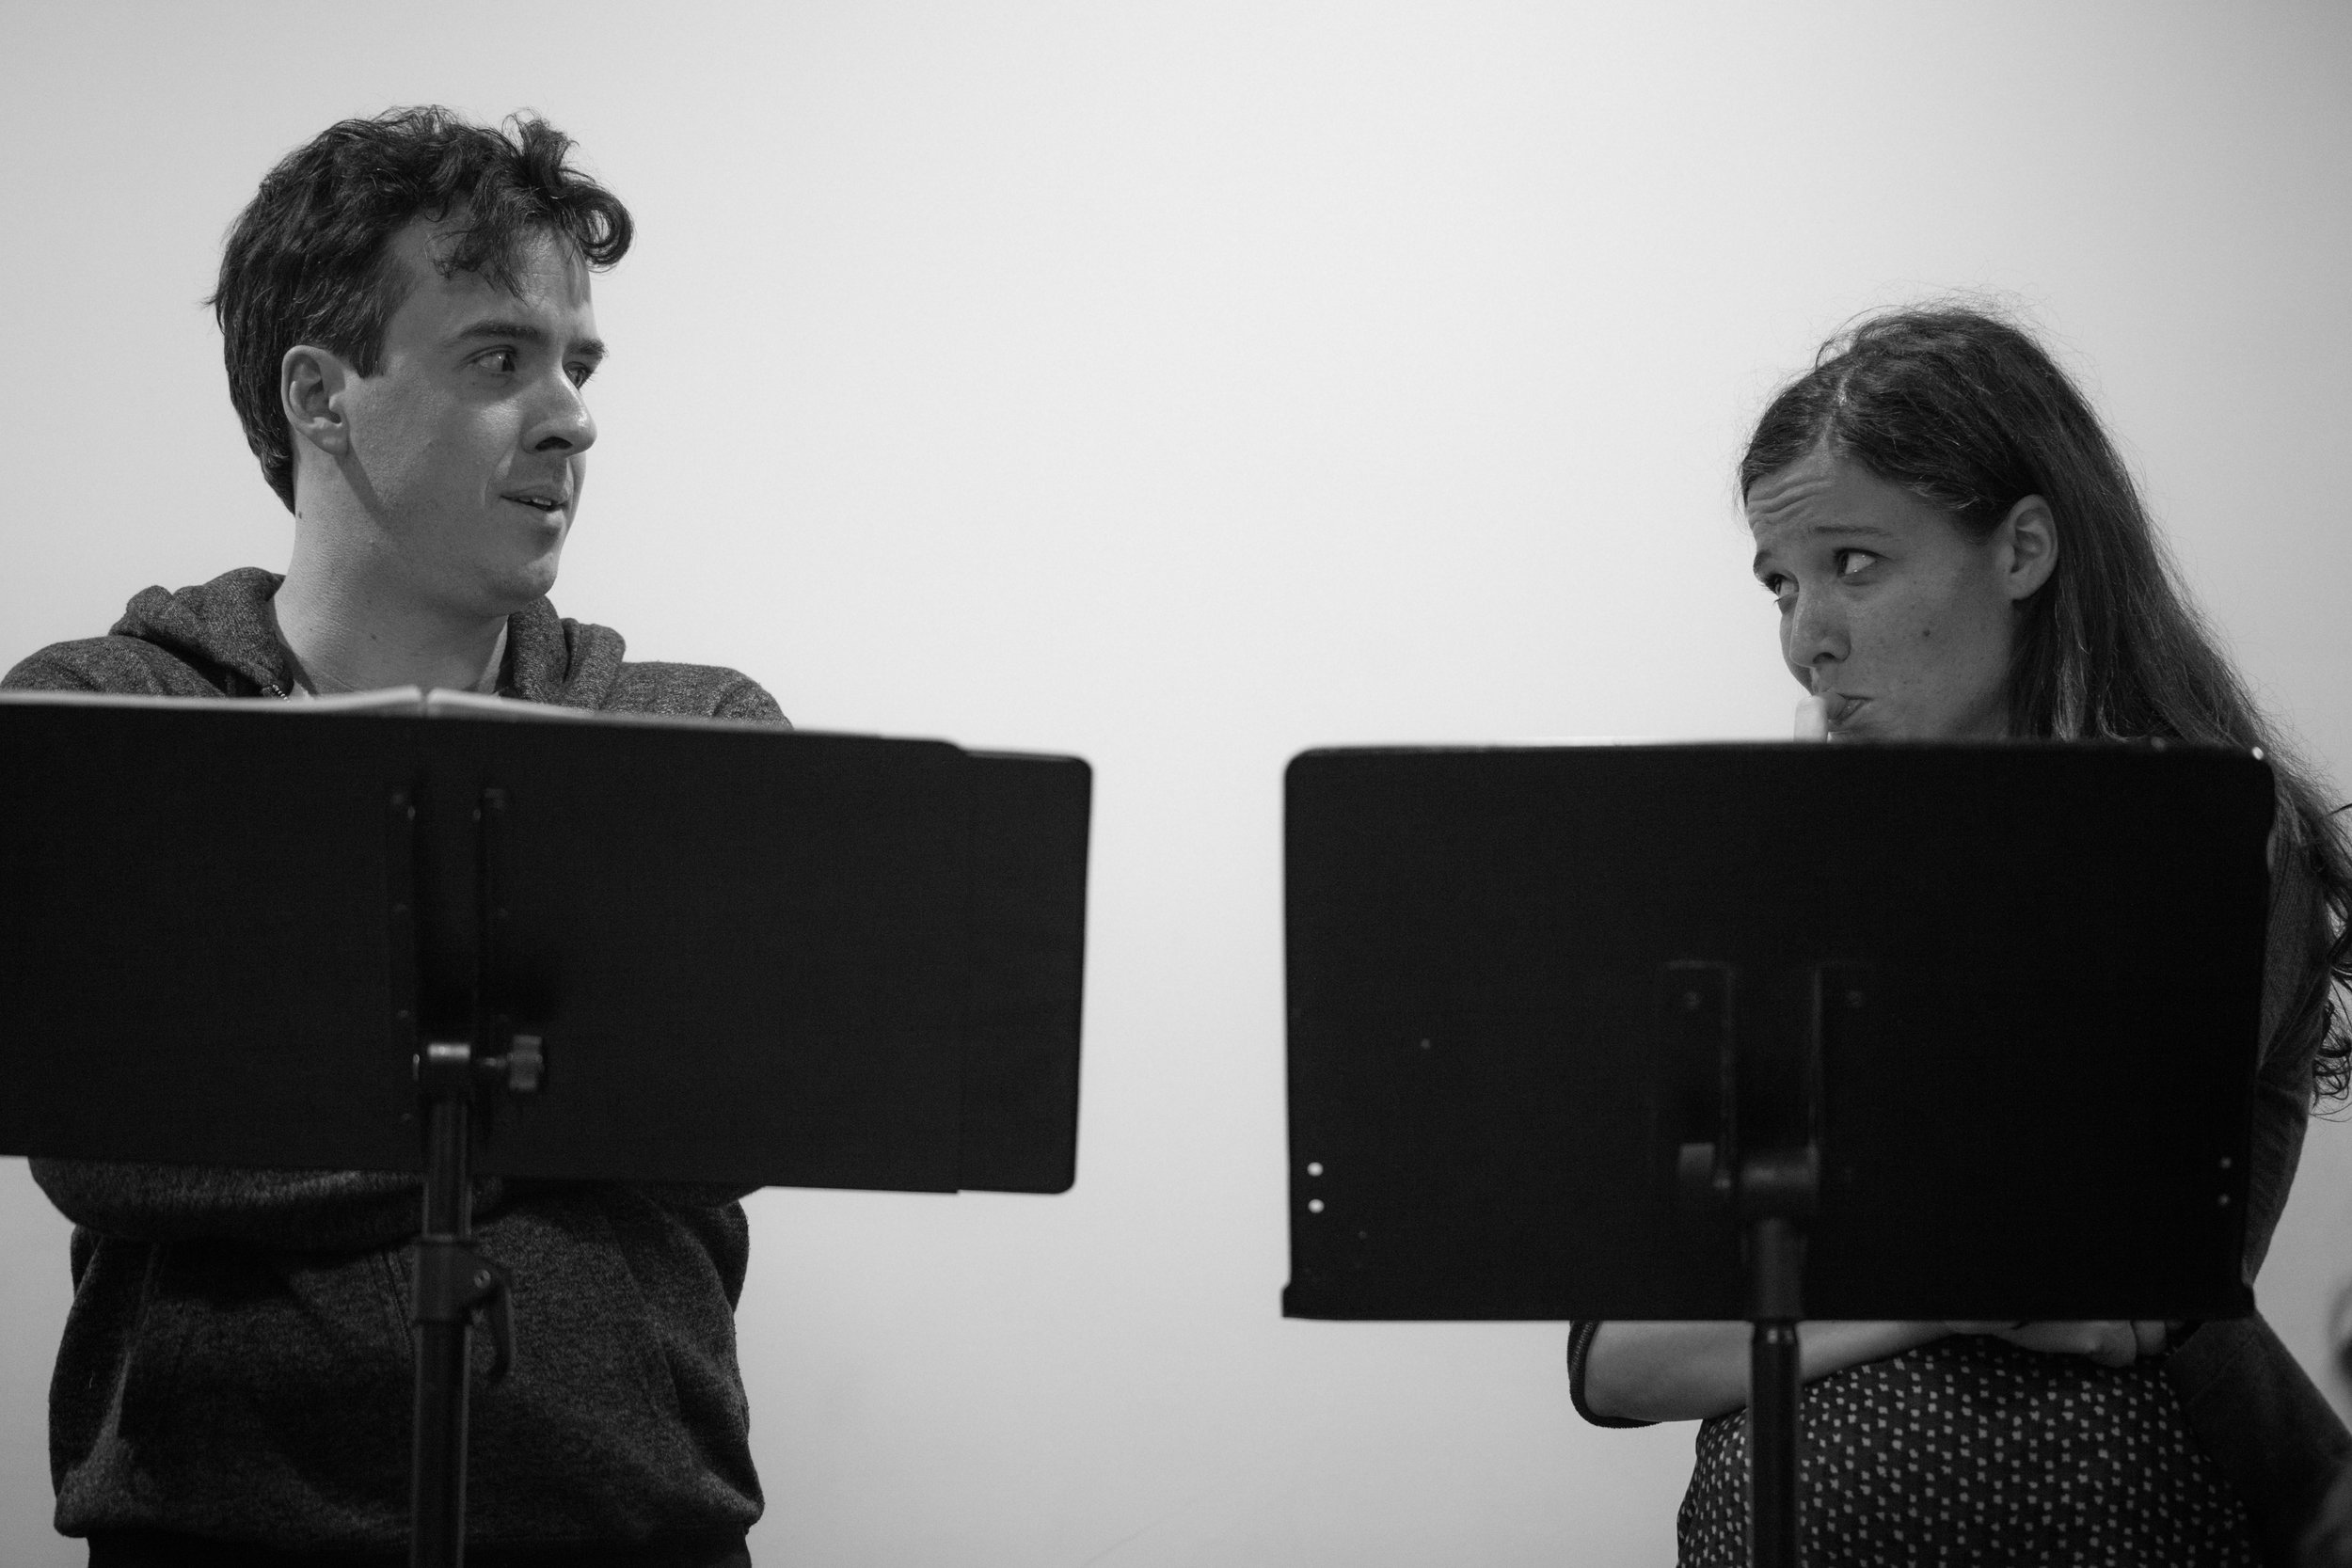 Co-Artistic Director and actor Craig Wesley Divino with actor Molly Carden.Photo by Katherine Oostman.